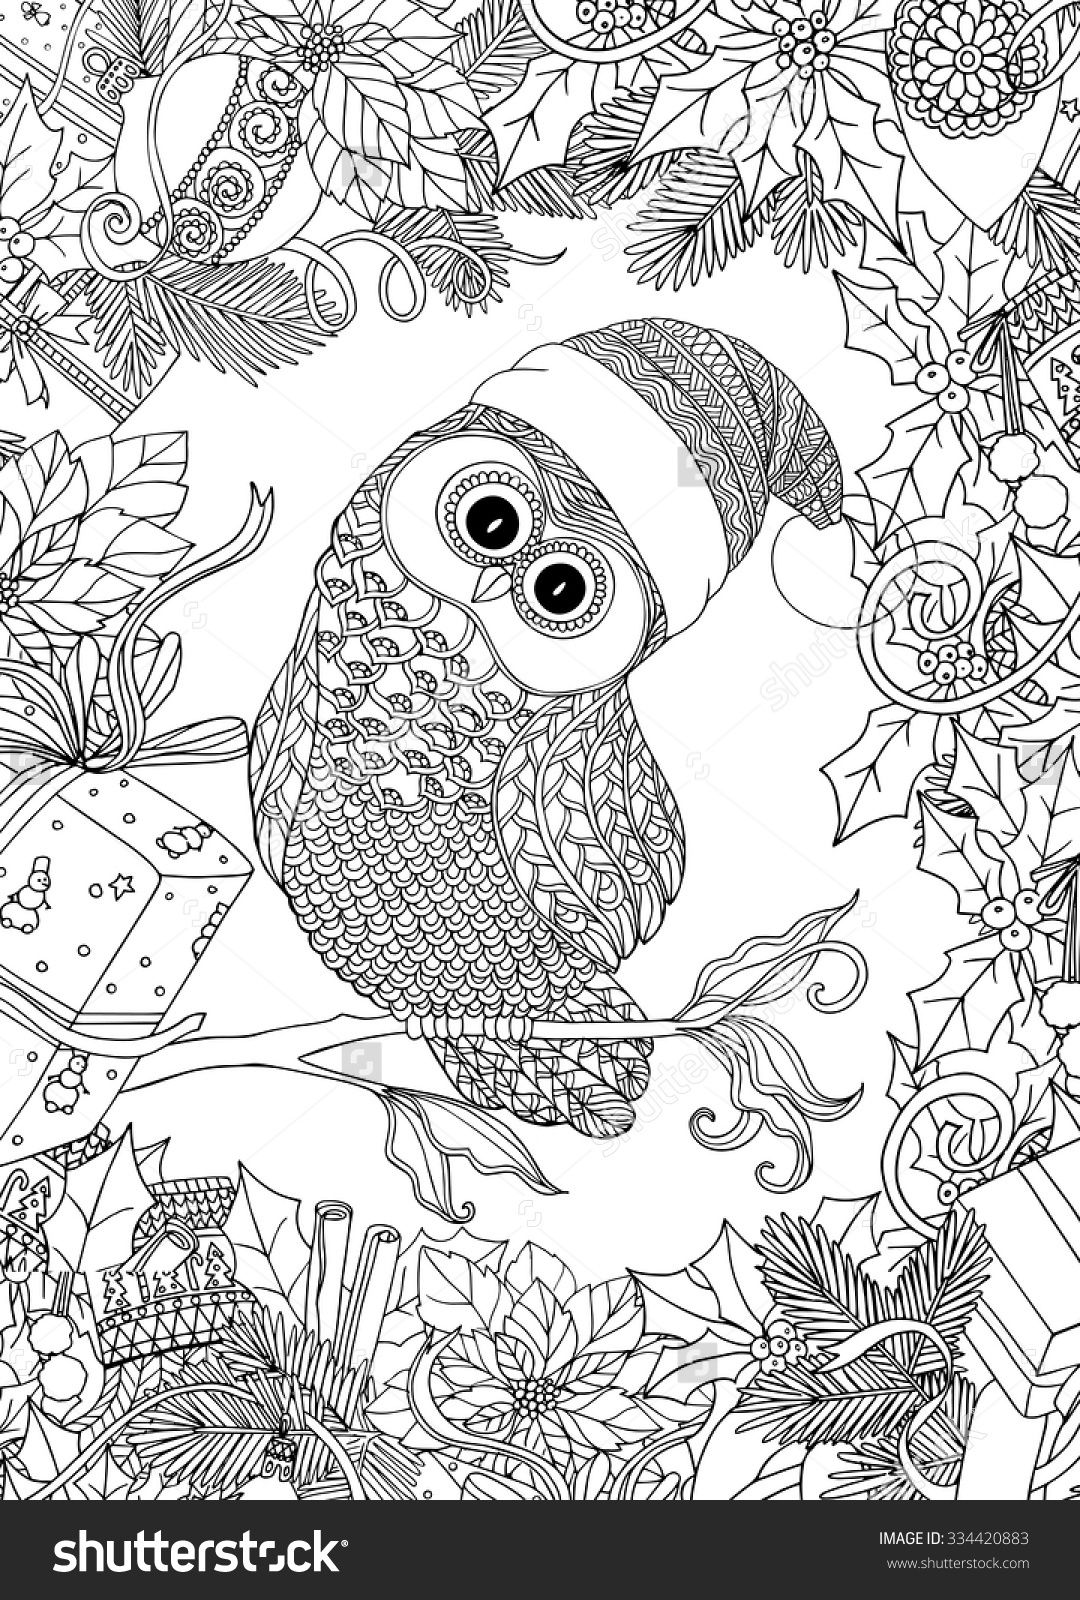 Coloring Book For Adult And Older Children Page With More